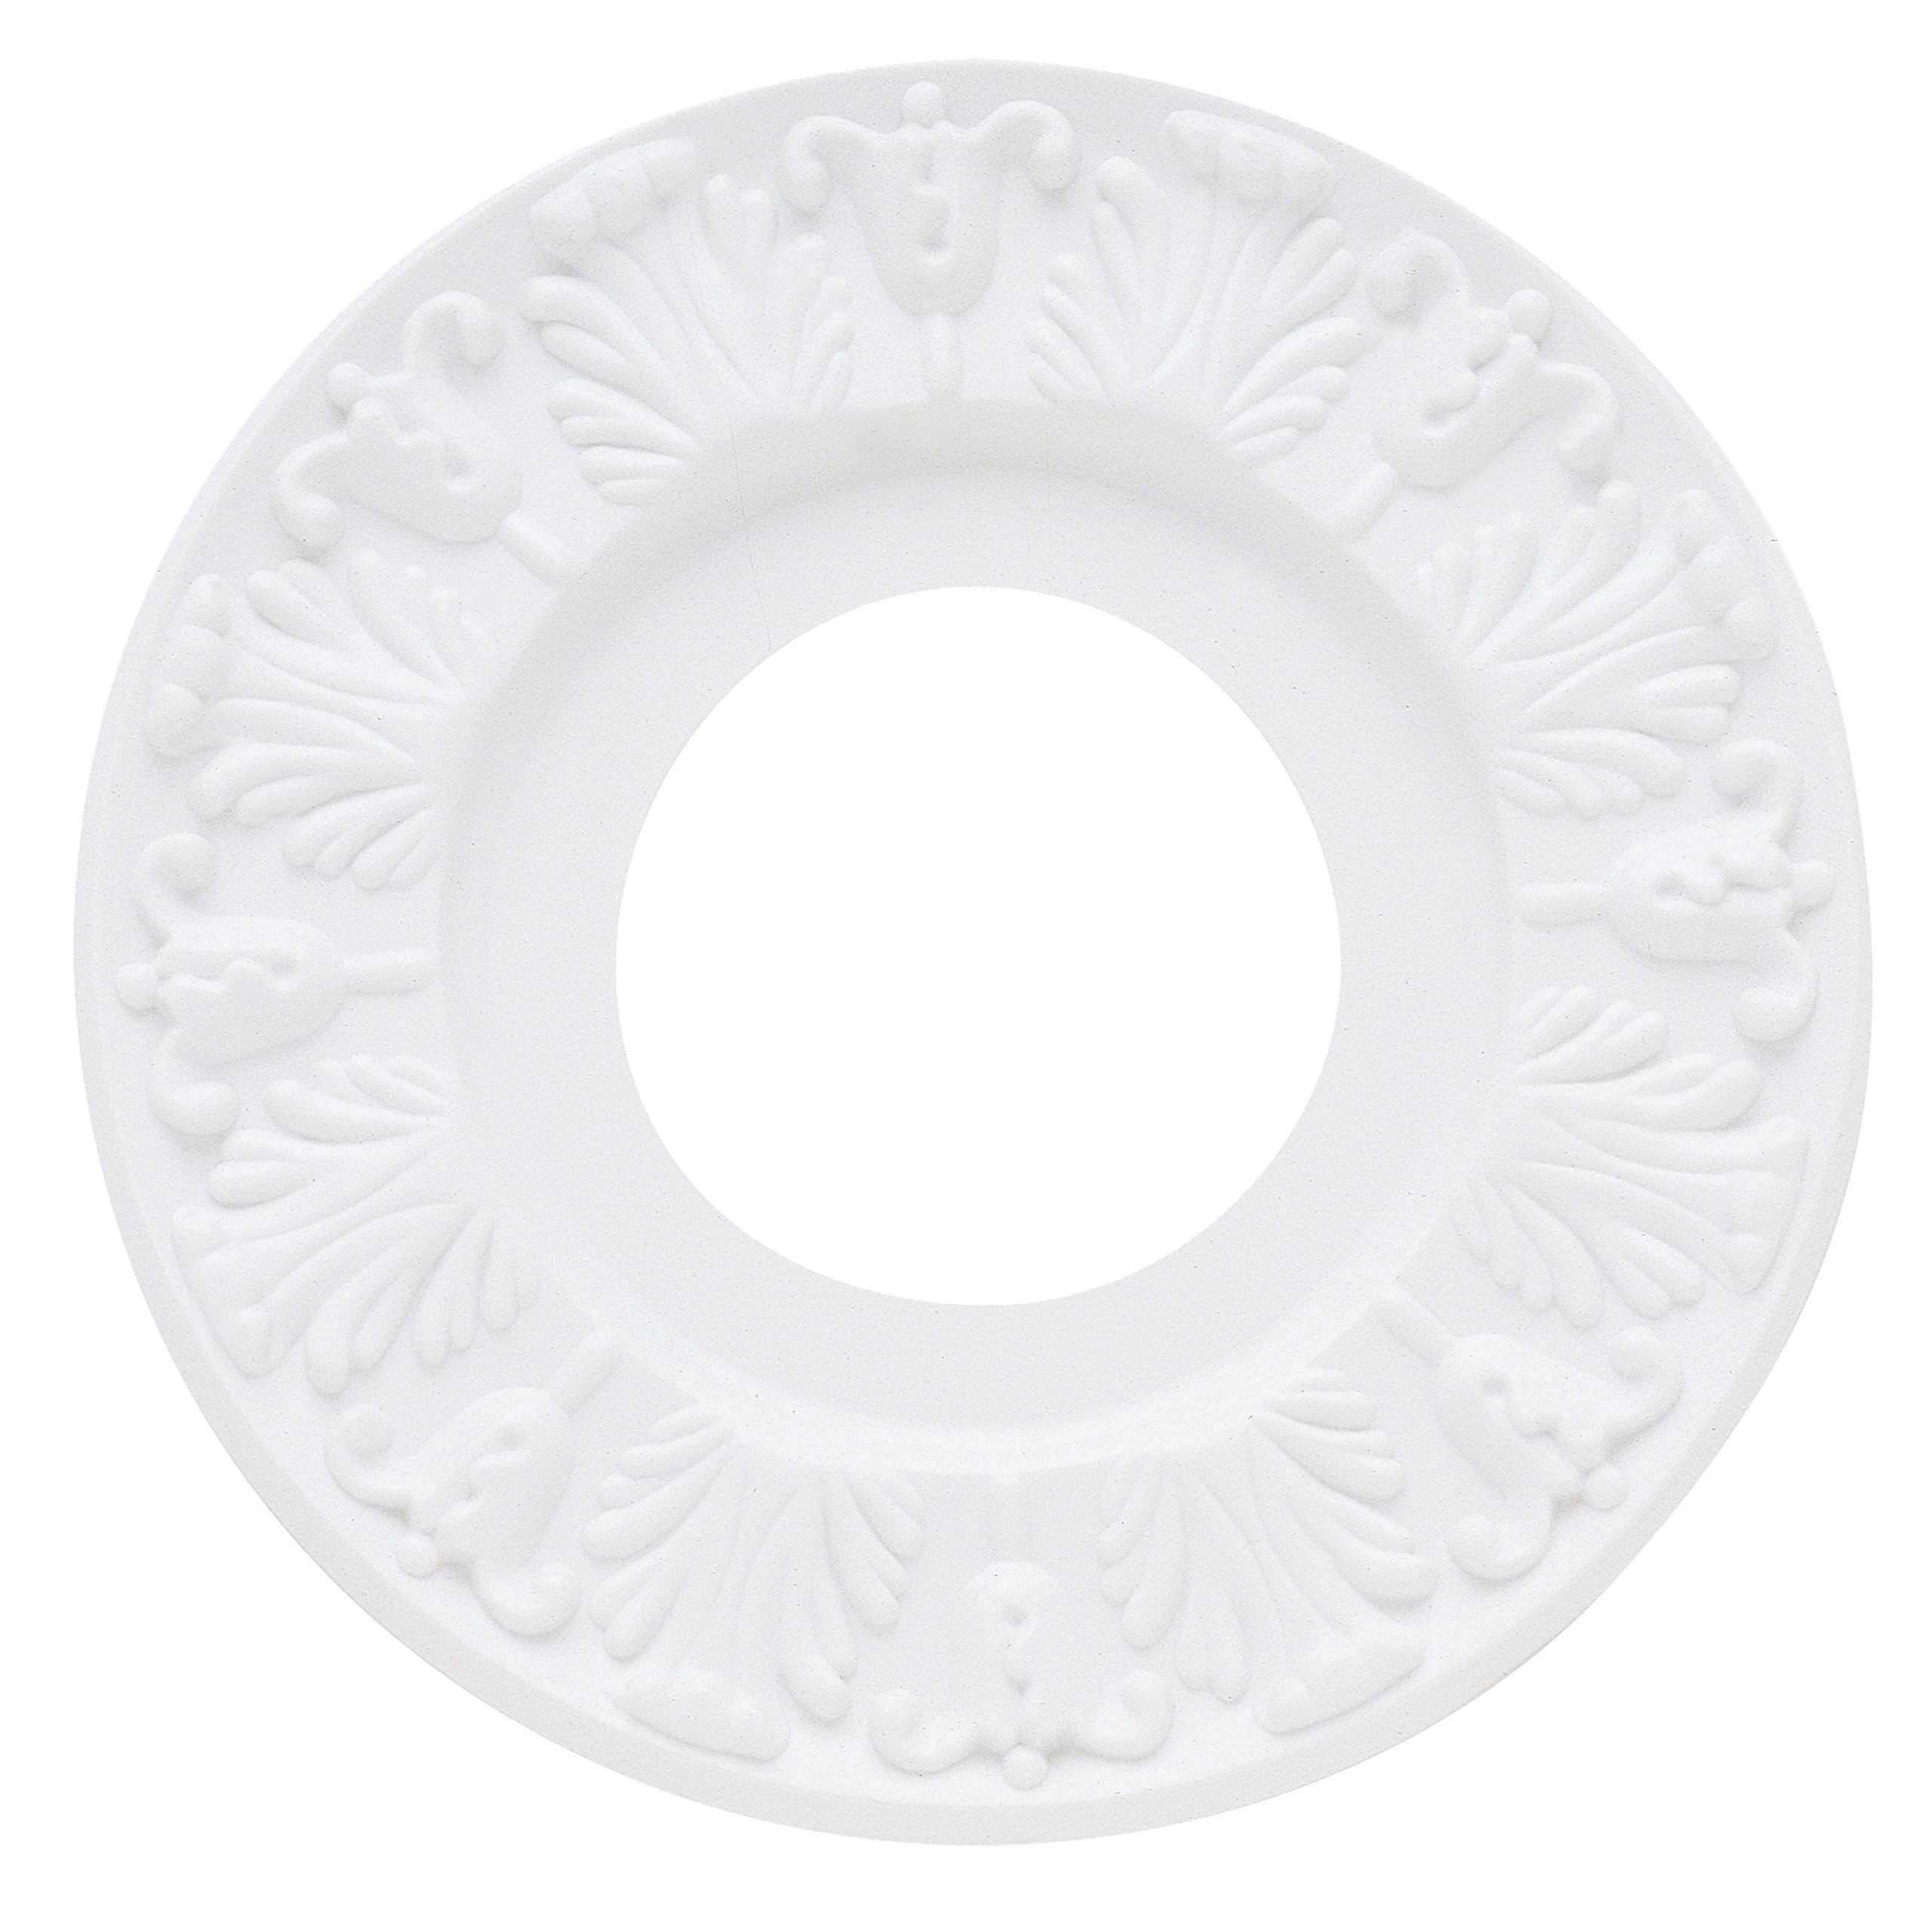 Westinghouse 7702700 Lighting Ceiling Medallions, Molded Plastic, 10 Inch Dia 1 Pack White Finish